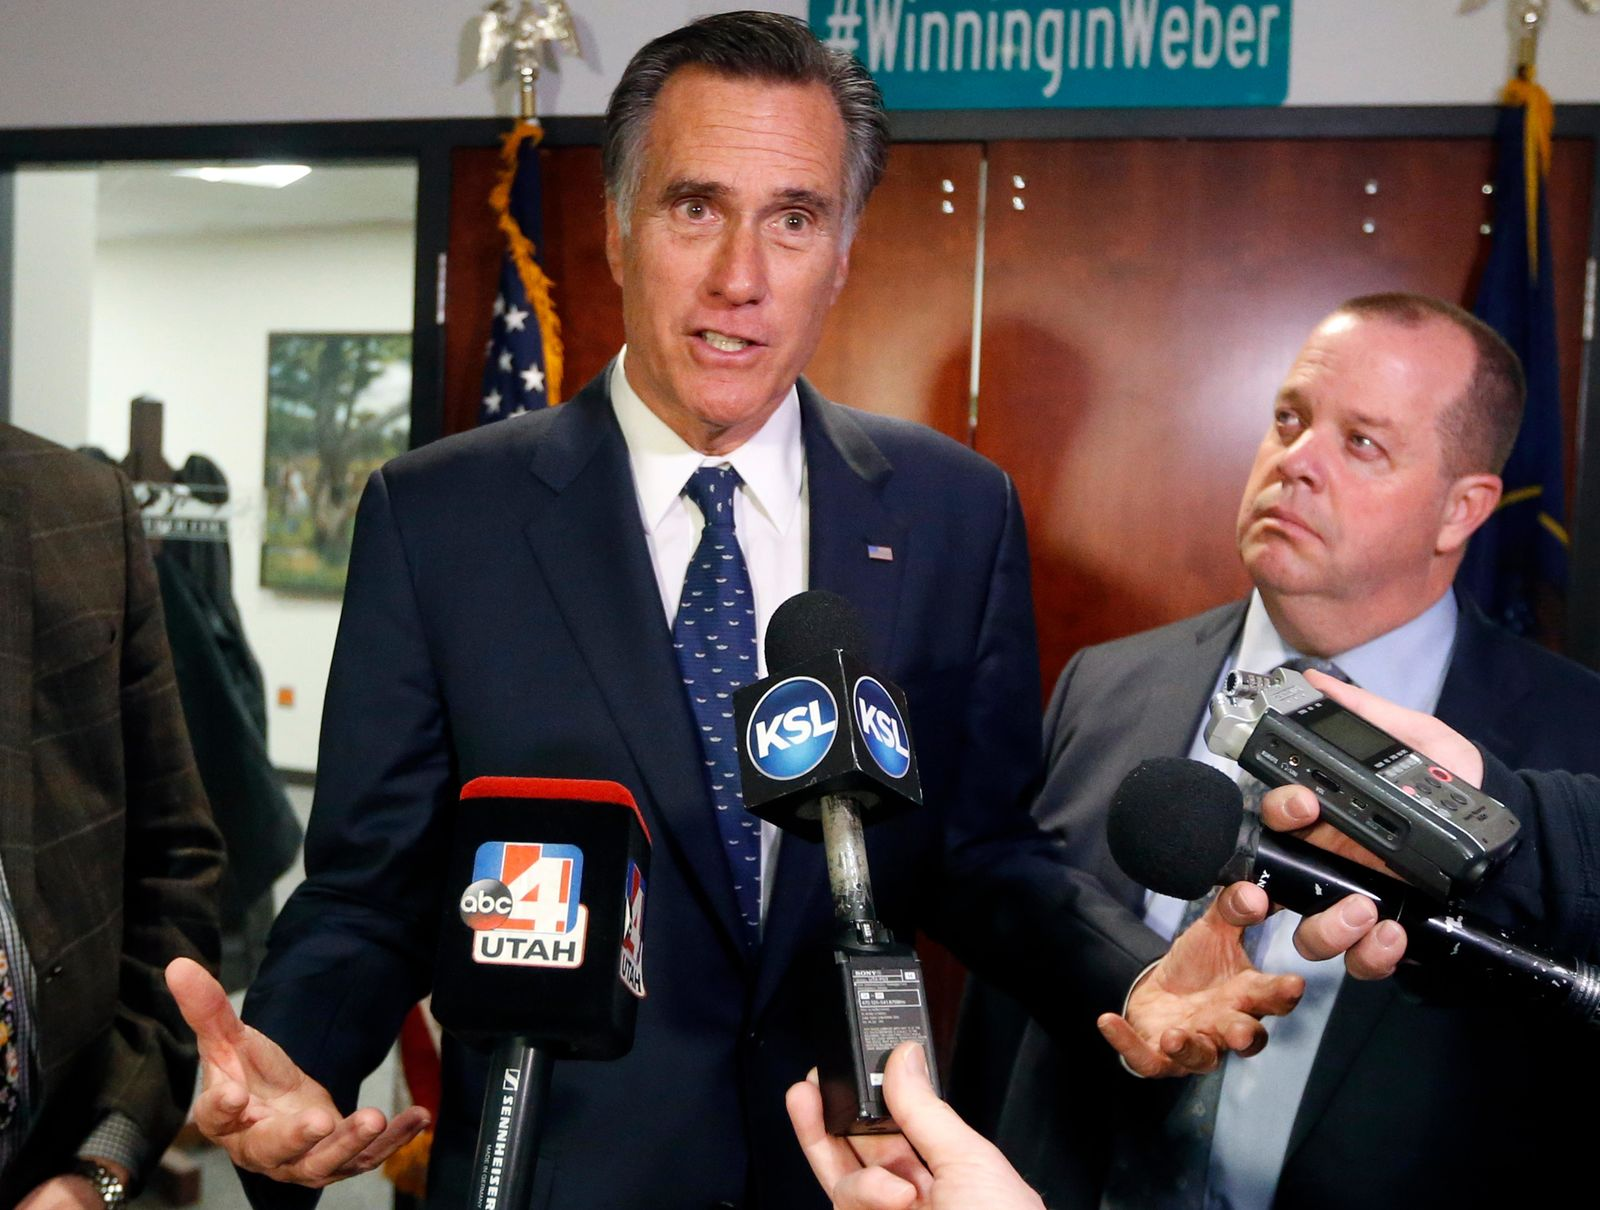 Utah Sen. Mitt Romney, left, speaks with reporters after visiting with local officials to discuss how the four-week partial government shutdown is impacting an area with several major federal employers, including the Internal Revenue Service, Friday Jan., 18, 2019, in Ogden, Utah. (AP Photo/Rick Bowmer)